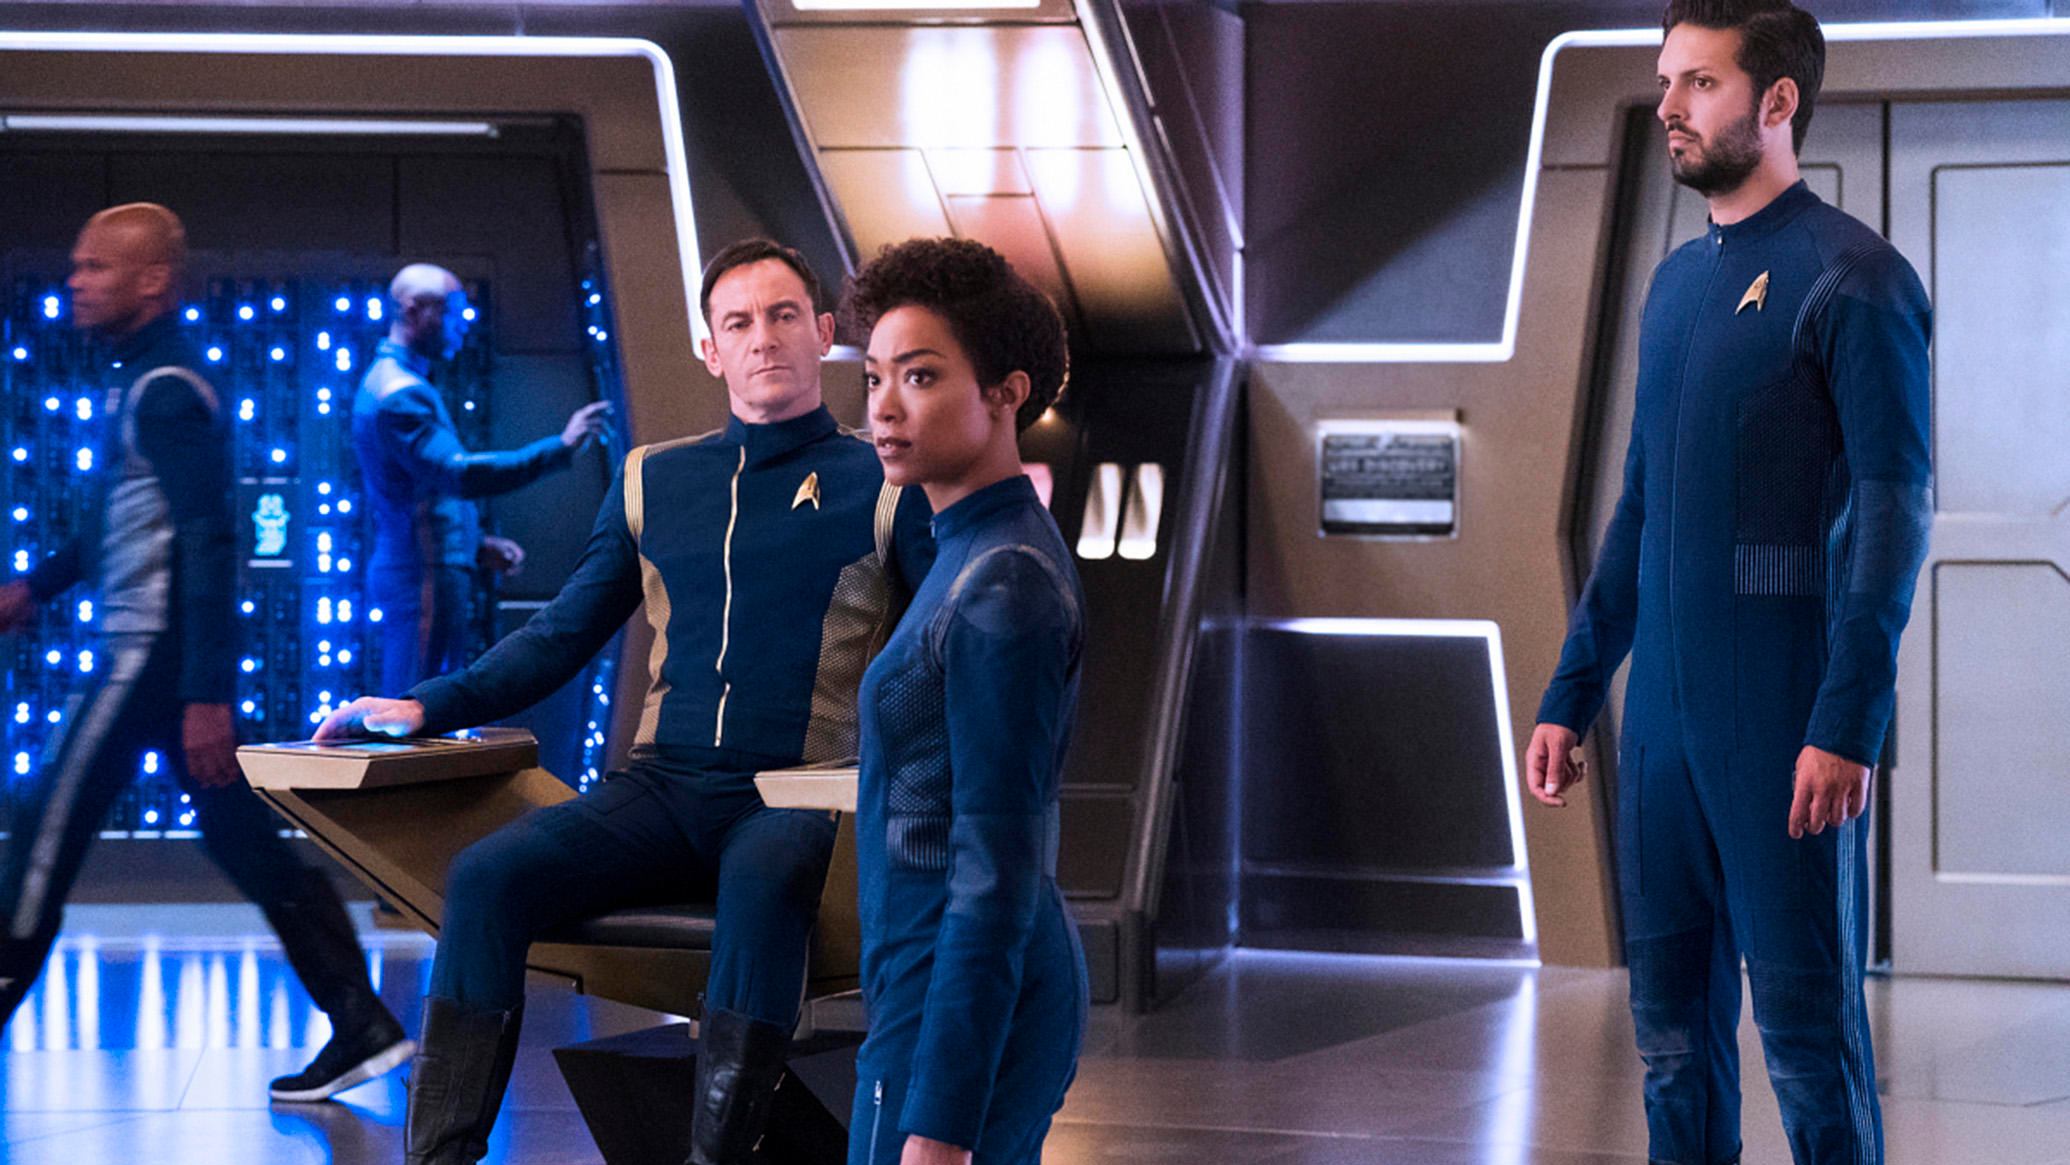 Star Trek: Discovery's Second Season Might Feature More Traditional Trek Touches